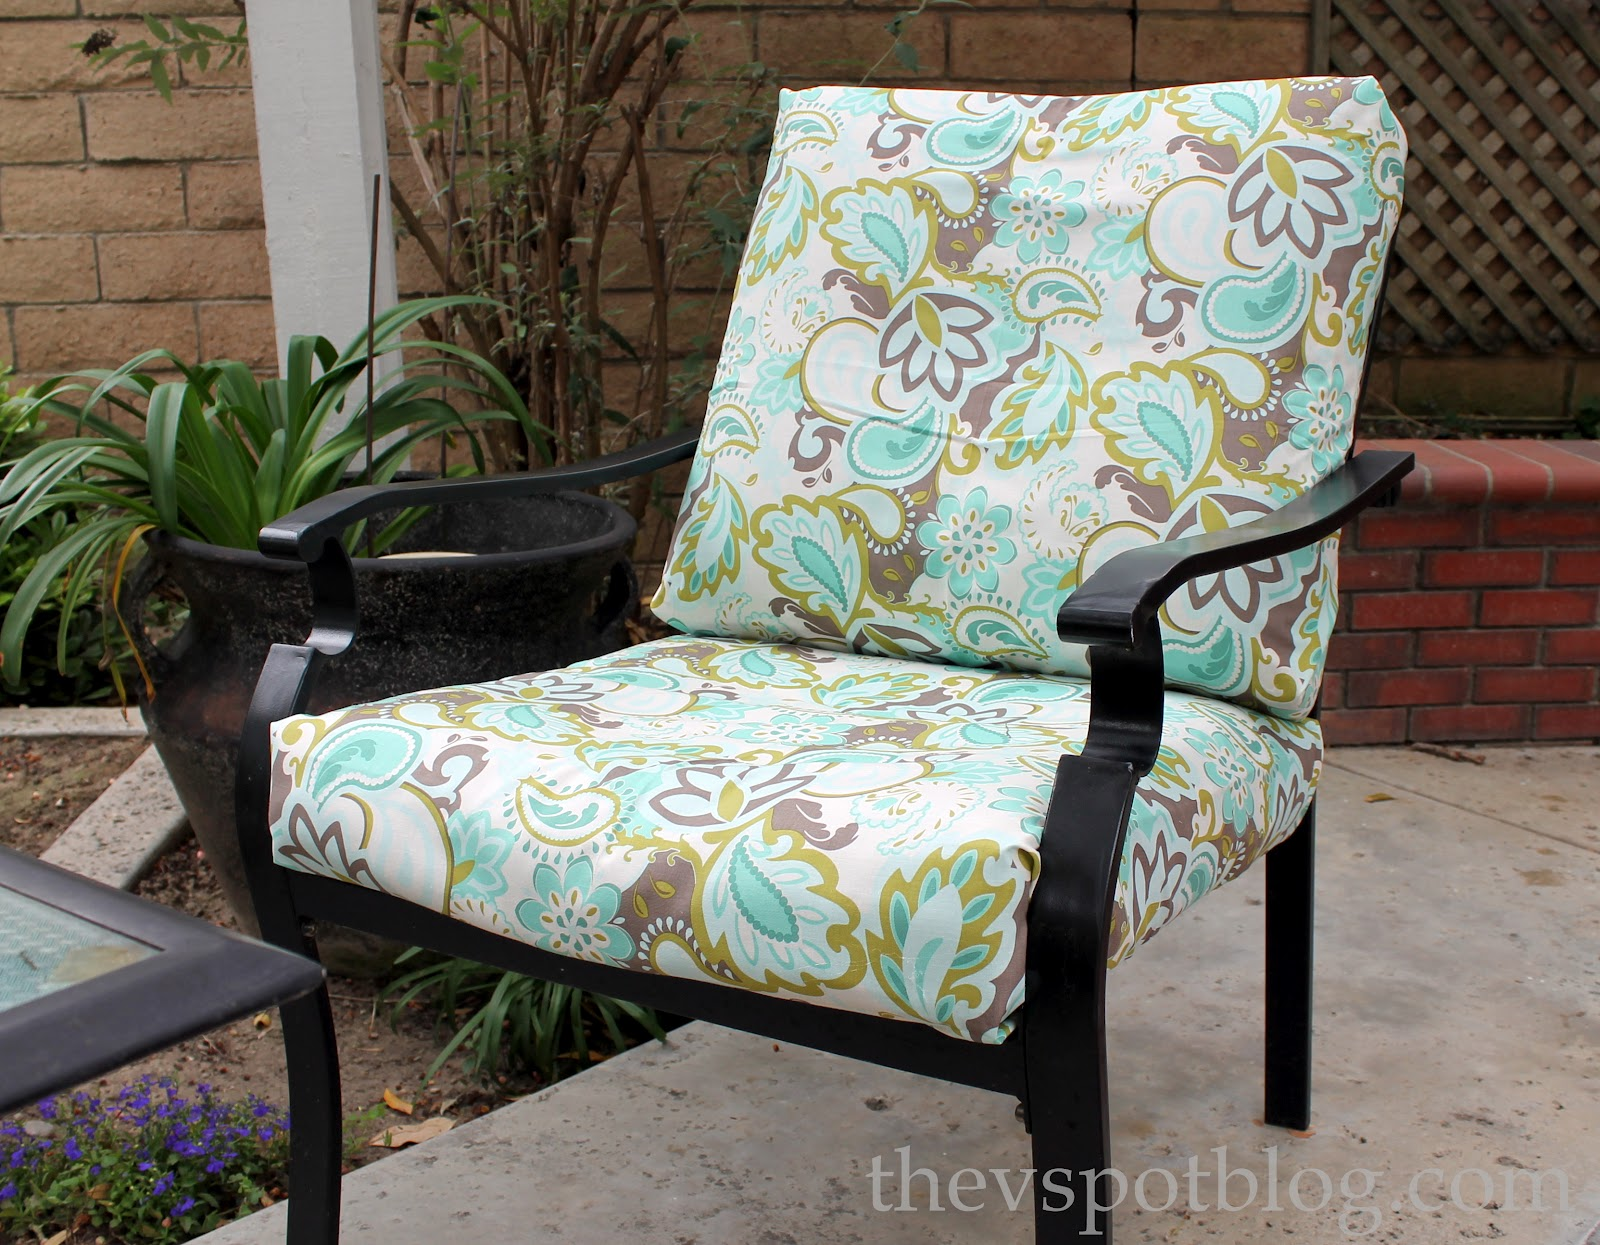 No Sew Project How to recover your outdoor cushions using fabric and a glue gun  The V Spot